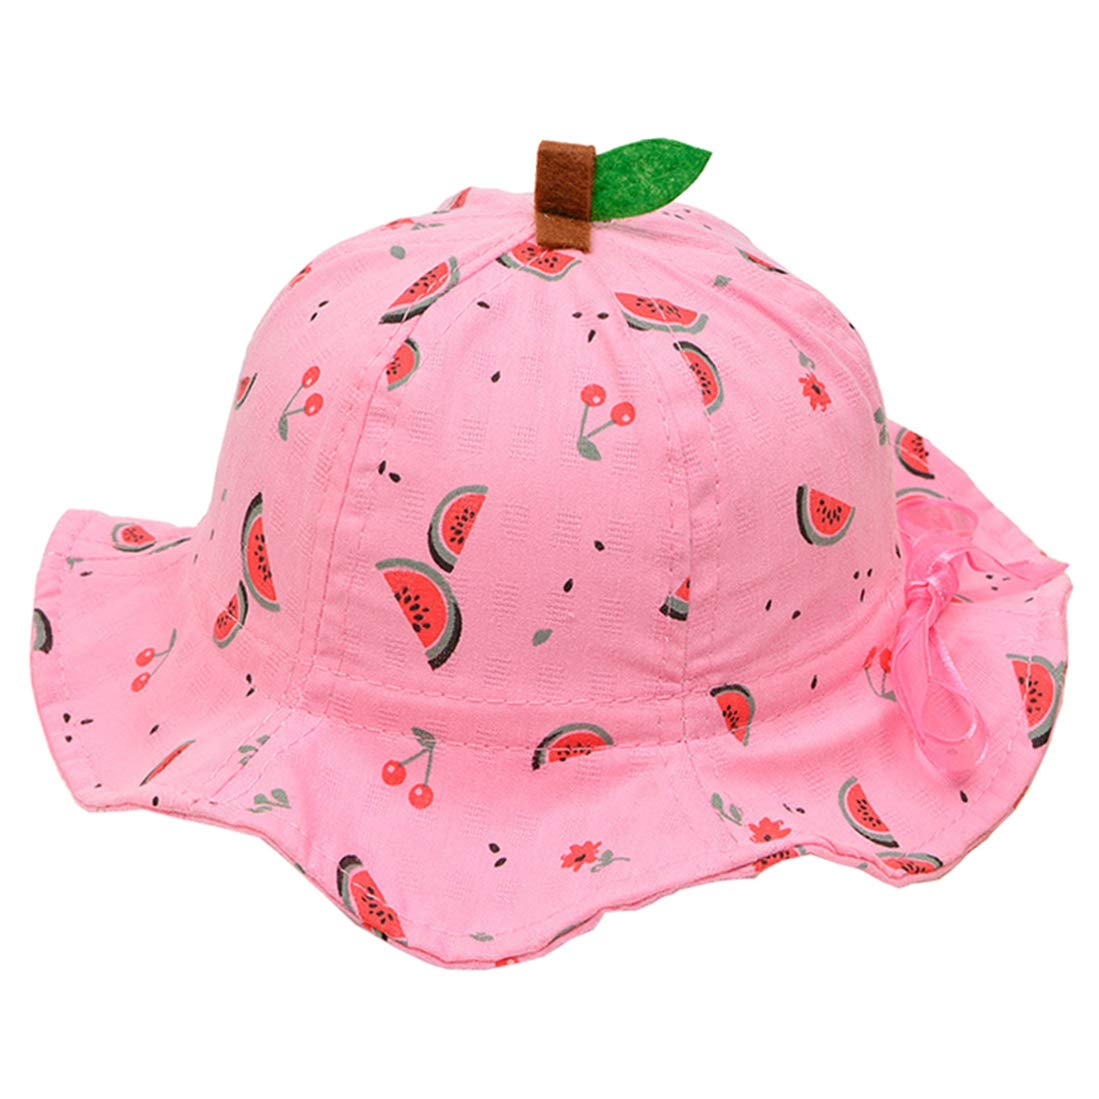 Cotton Breathable Adjustable Baby Girls Sun-Hat Watermelon